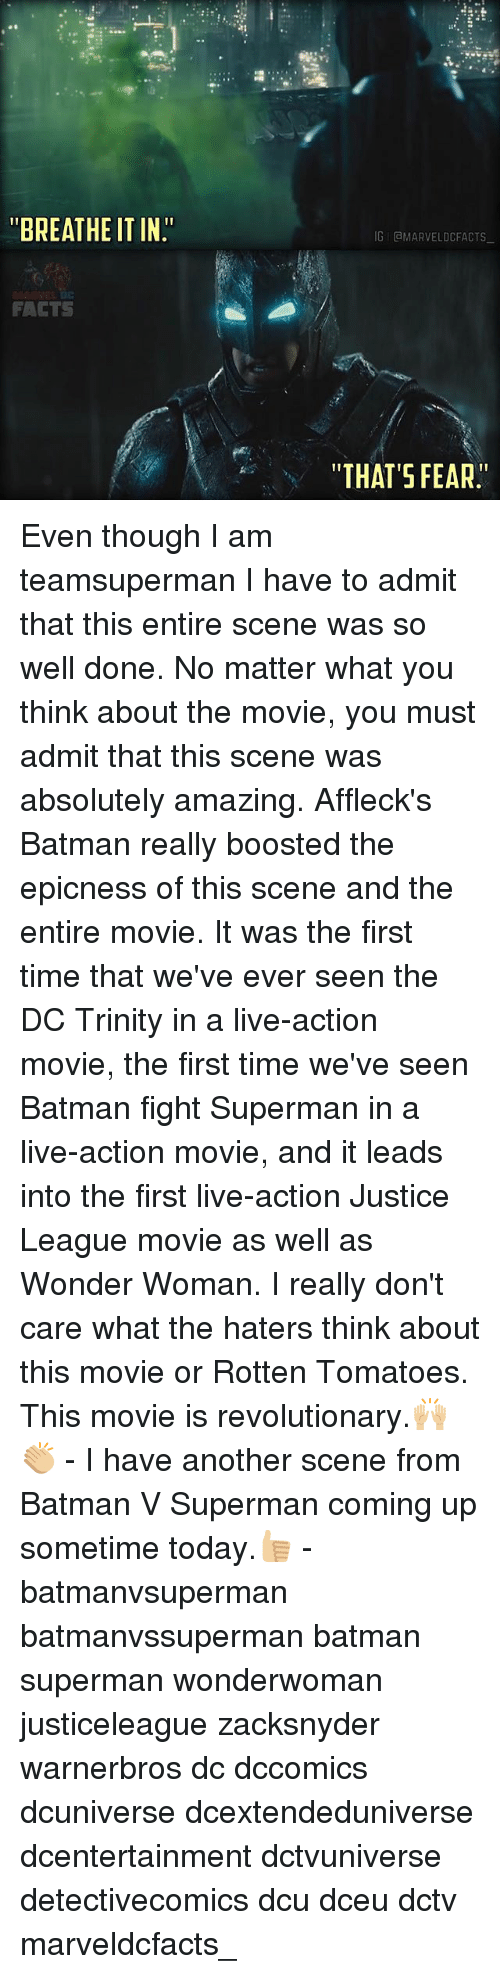 """Rotten Tomatoes: """"BREATHE ITIN""""  FACTS  IGIGMARVELDCFACTS  """"THAT'S FEAR. Even though I am teamsuperman I have to admit that this entire scene was so well done. No matter what you think about the movie, you must admit that this scene was absolutely amazing. Affleck's Batman really boosted the epicness of this scene and the entire movie. It was the first time that we've ever seen the DC Trinity in a live-action movie, the first time we've seen Batman fight Superman in a live-action movie, and it leads into the first live-action Justice League movie as well as Wonder Woman. I really don't care what the haters think about this movie or Rotten Tomatoes. This movie is revolutionary.🙌🏼👏🏼 - I have another scene from Batman V Superman coming up sometime today.👍🏼 - batmanvsuperman batmanvssuperman batman superman wonderwoman justiceleague zacksnyder warnerbros dc dccomics dcuniverse dcextendeduniverse dcentertainment dctvuniverse detectivecomics dcu dceu dctv marveldcfacts_"""